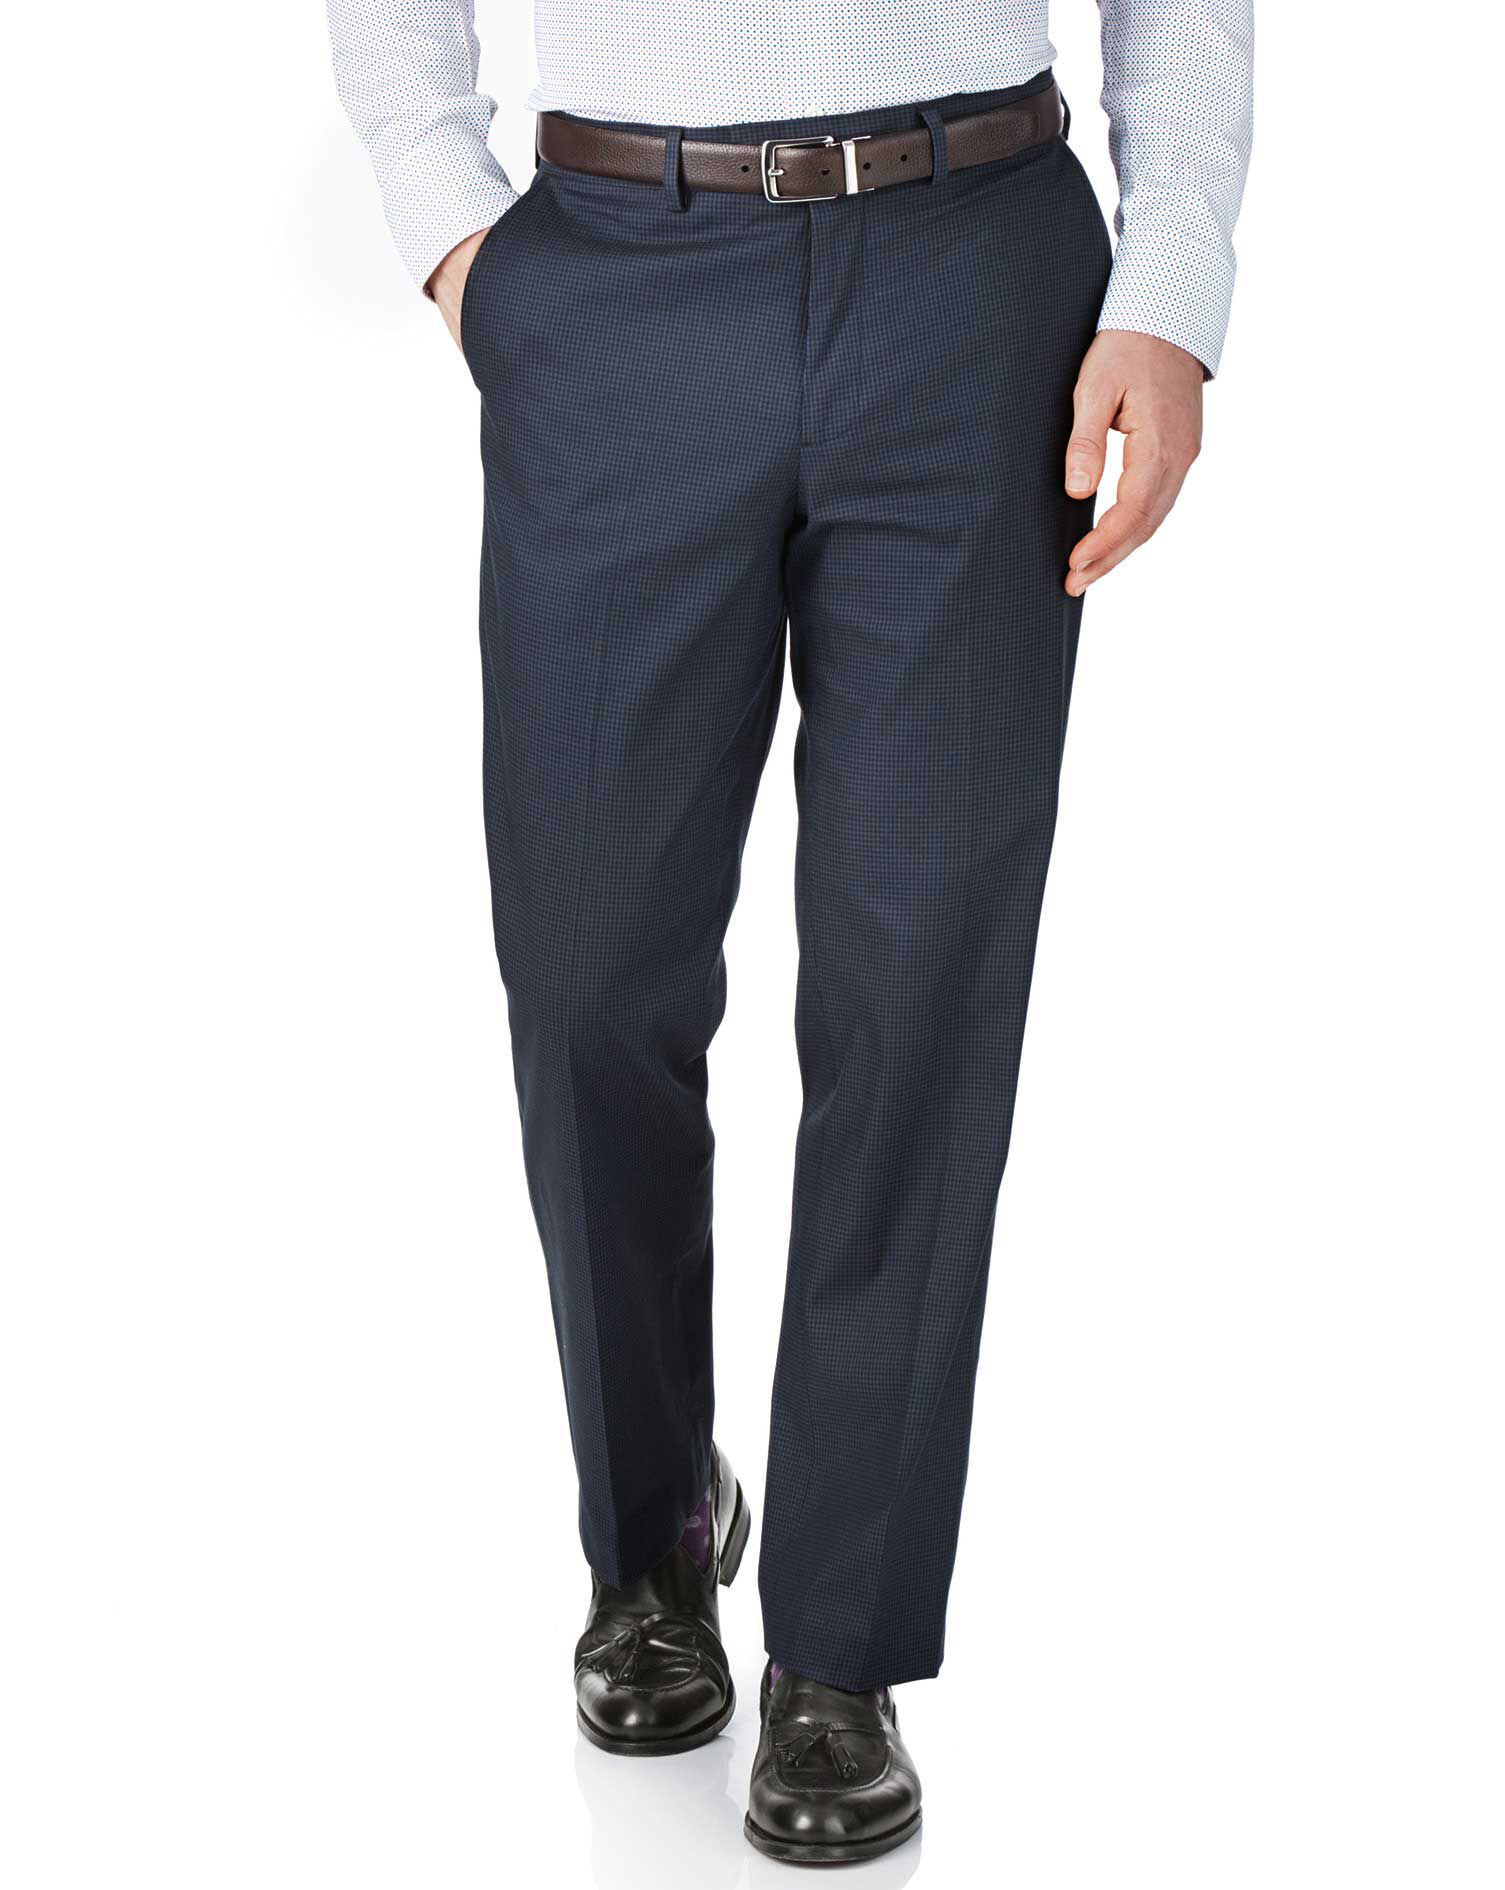 Navy and Blue Classic Fit Puppytooth Trousers Size W32 L32 by Charles Tyrwhitt